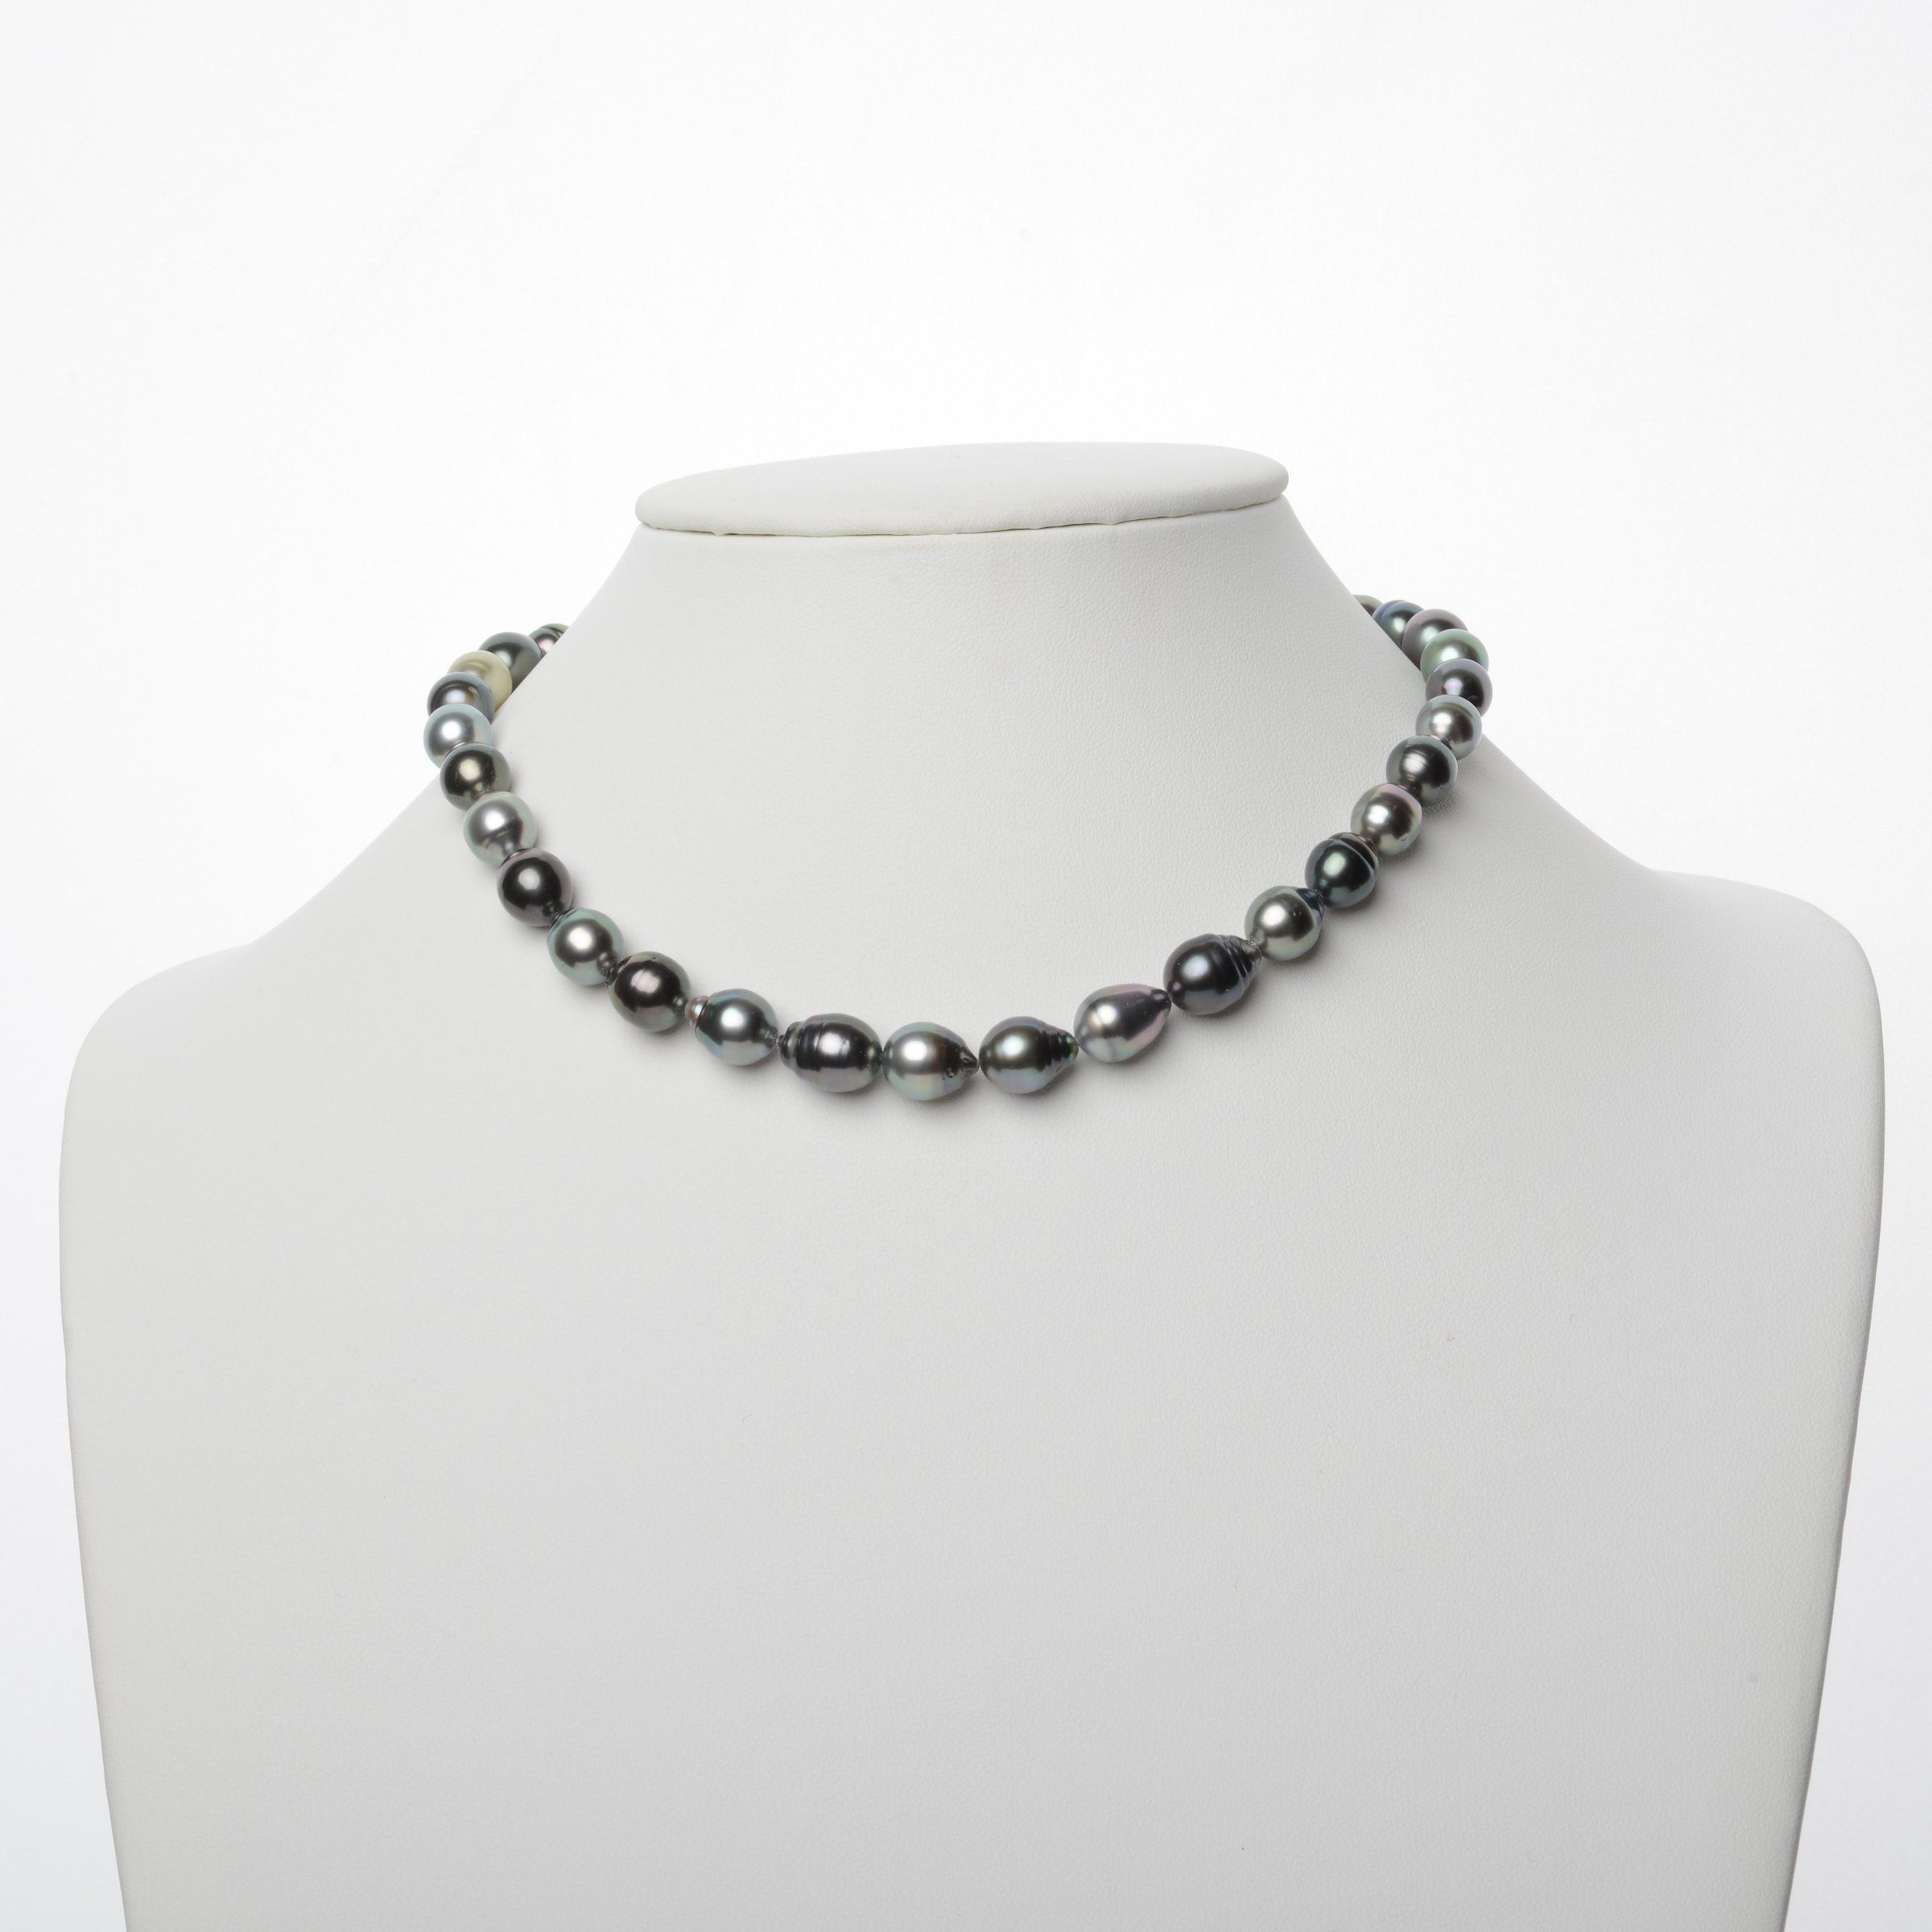 8.0-10.2 mm AAA Tahitian Baroque Pearl Necklace